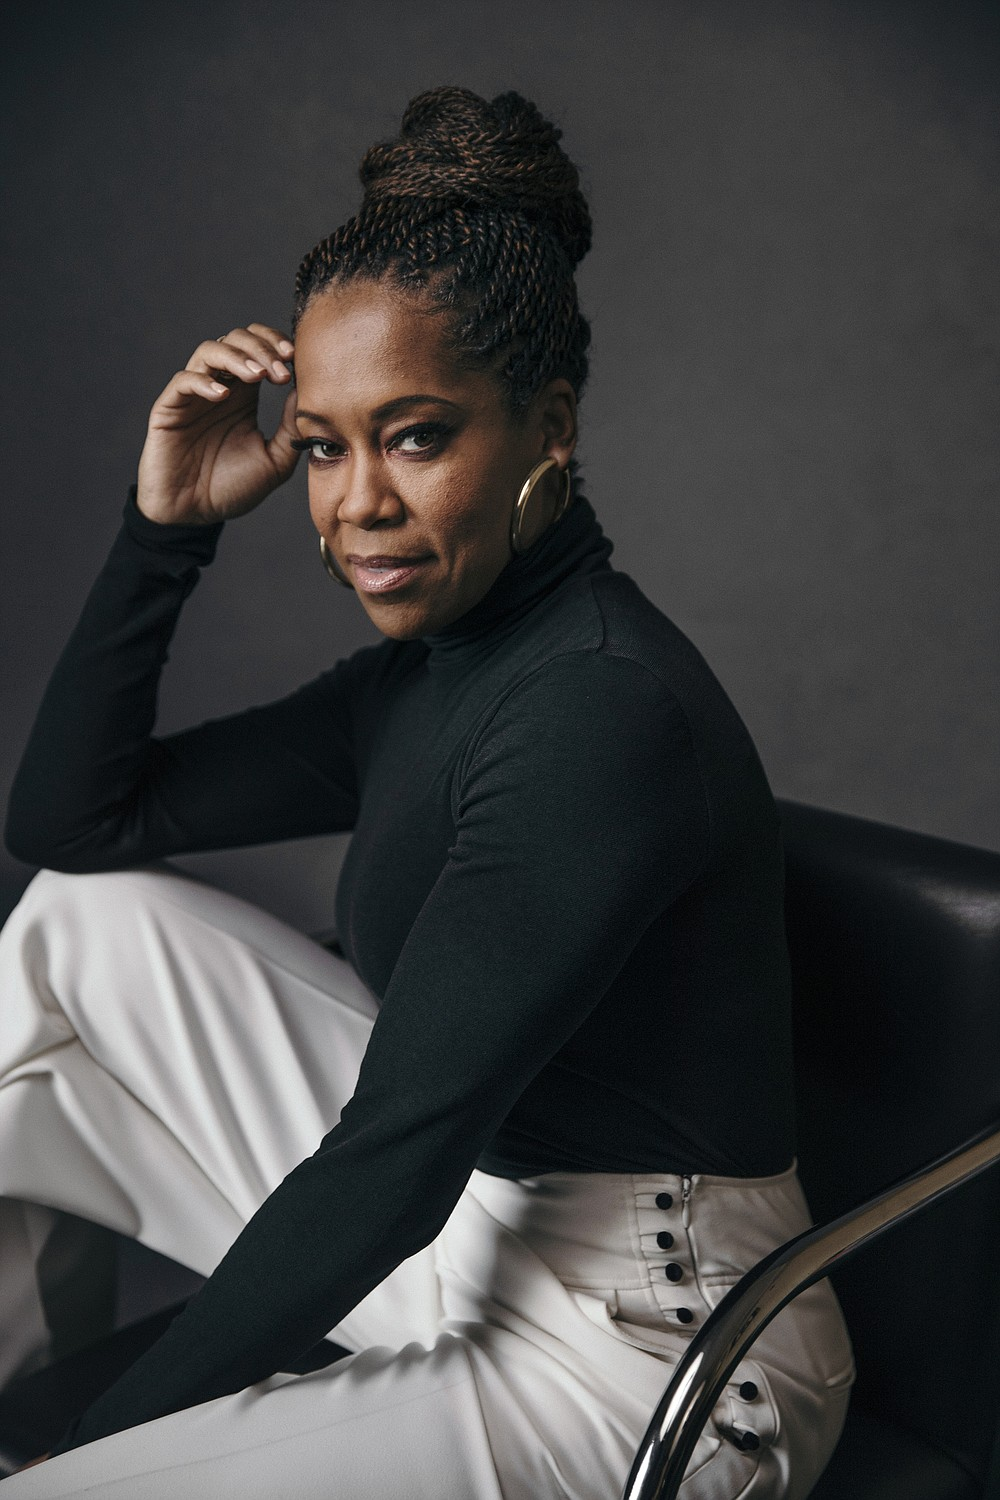 """FILE - Regina King poses for a portrait at Sofitel in New York on Feb. 13, 2019. The Toronto International Film Festival on Thursday unveiled a lineup featuring King's directorial debut """"One Night in Miami,  a drama about a young Muhammad Ali, then Cassius Clay. The festival, which is set to run Sept. 10-19, has plotted a largely virtual 45th edition due to the pandemic. (Photo by Victoria Will/Invision/AP, File)"""